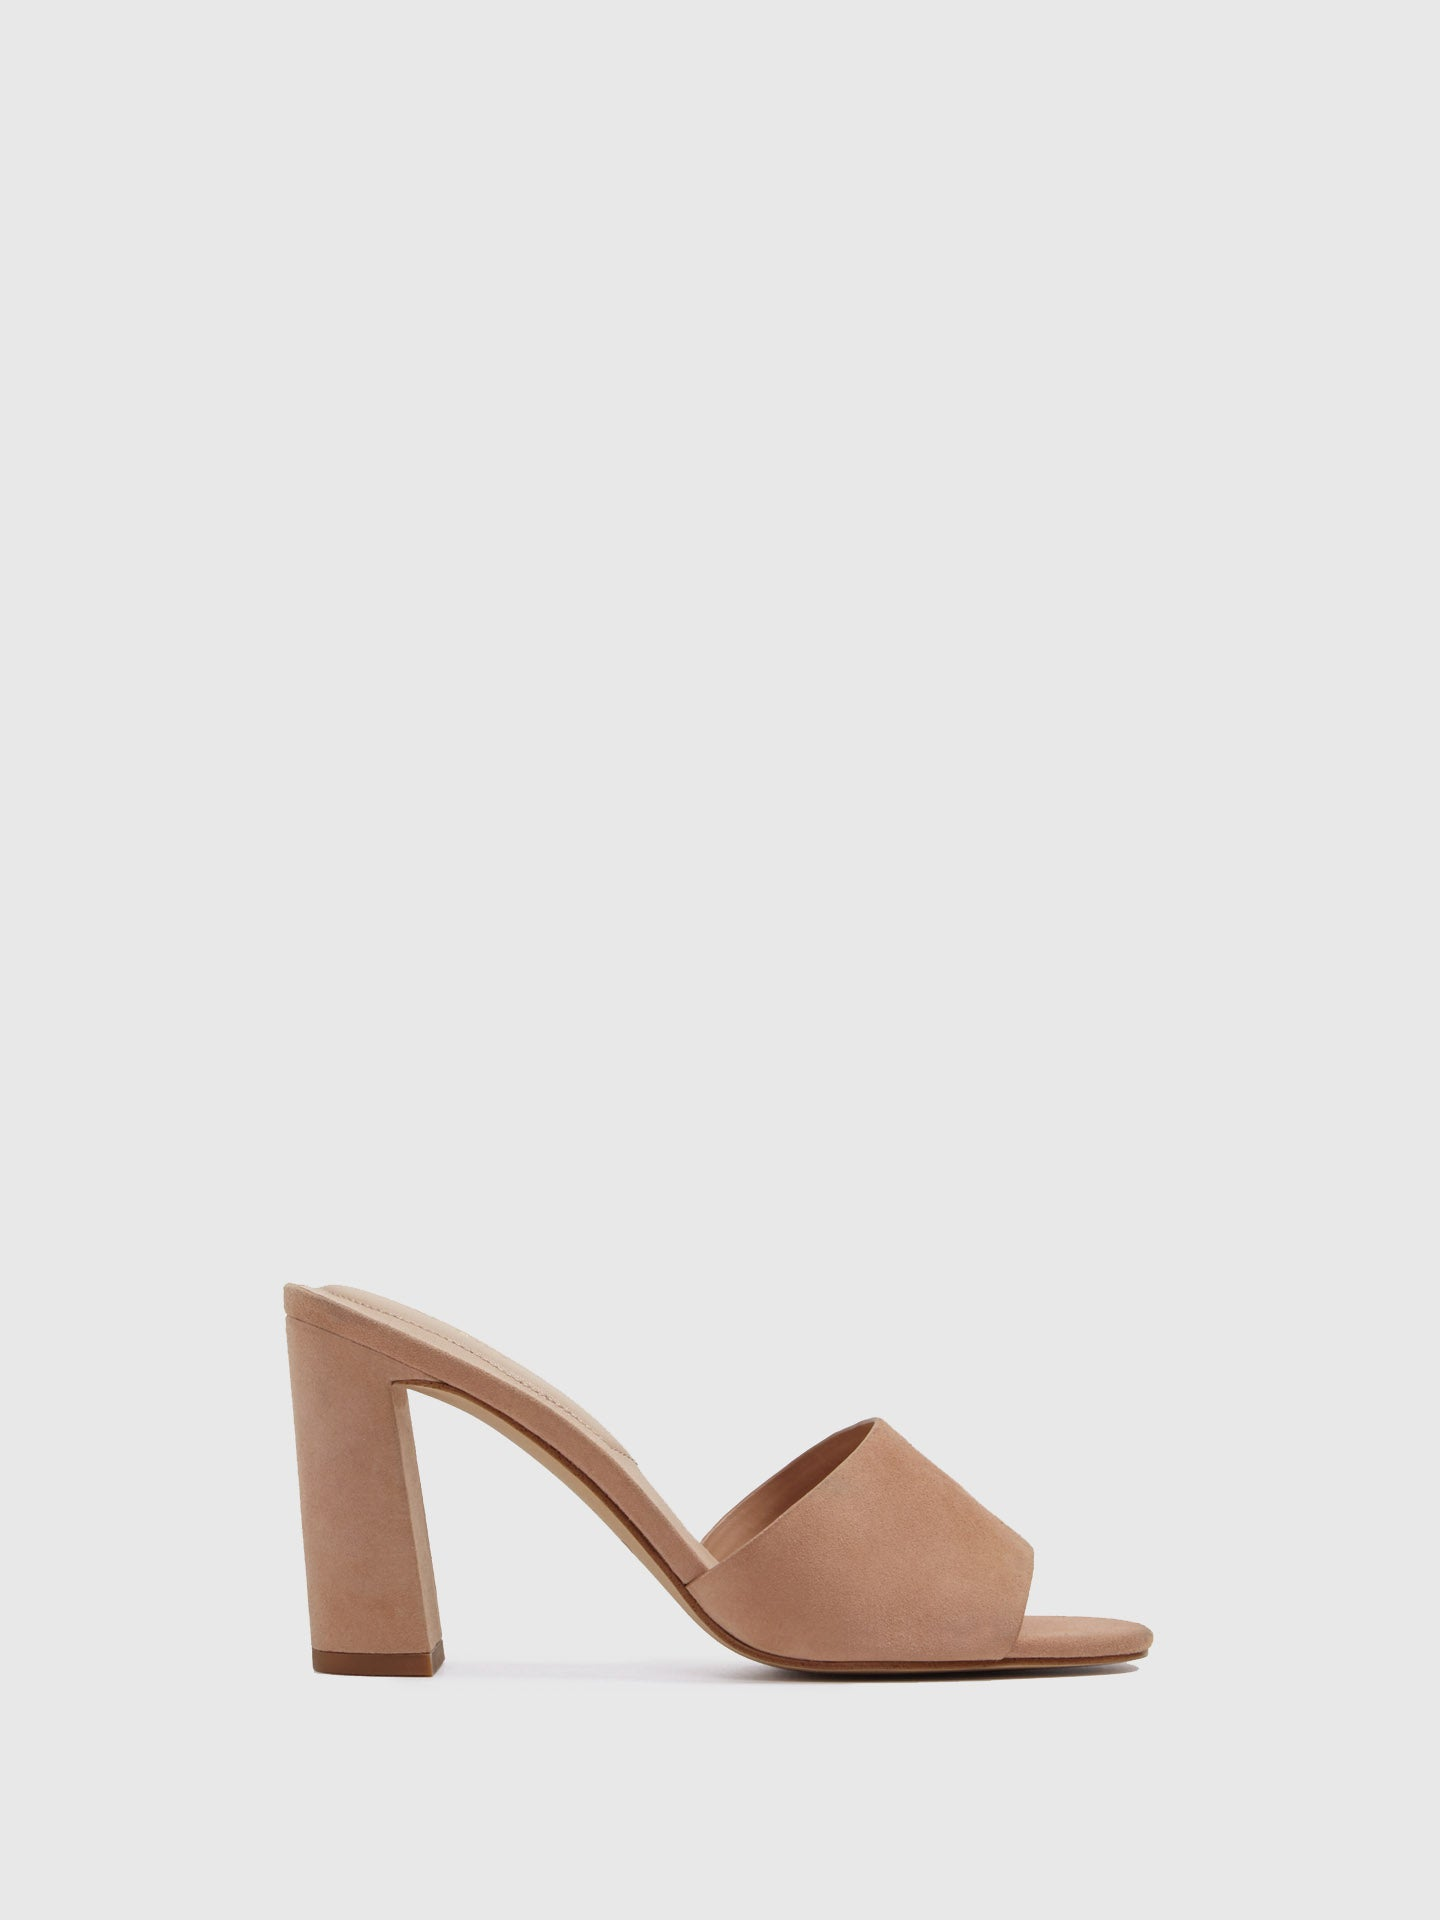 Aldo Brown Open Toe Sandals